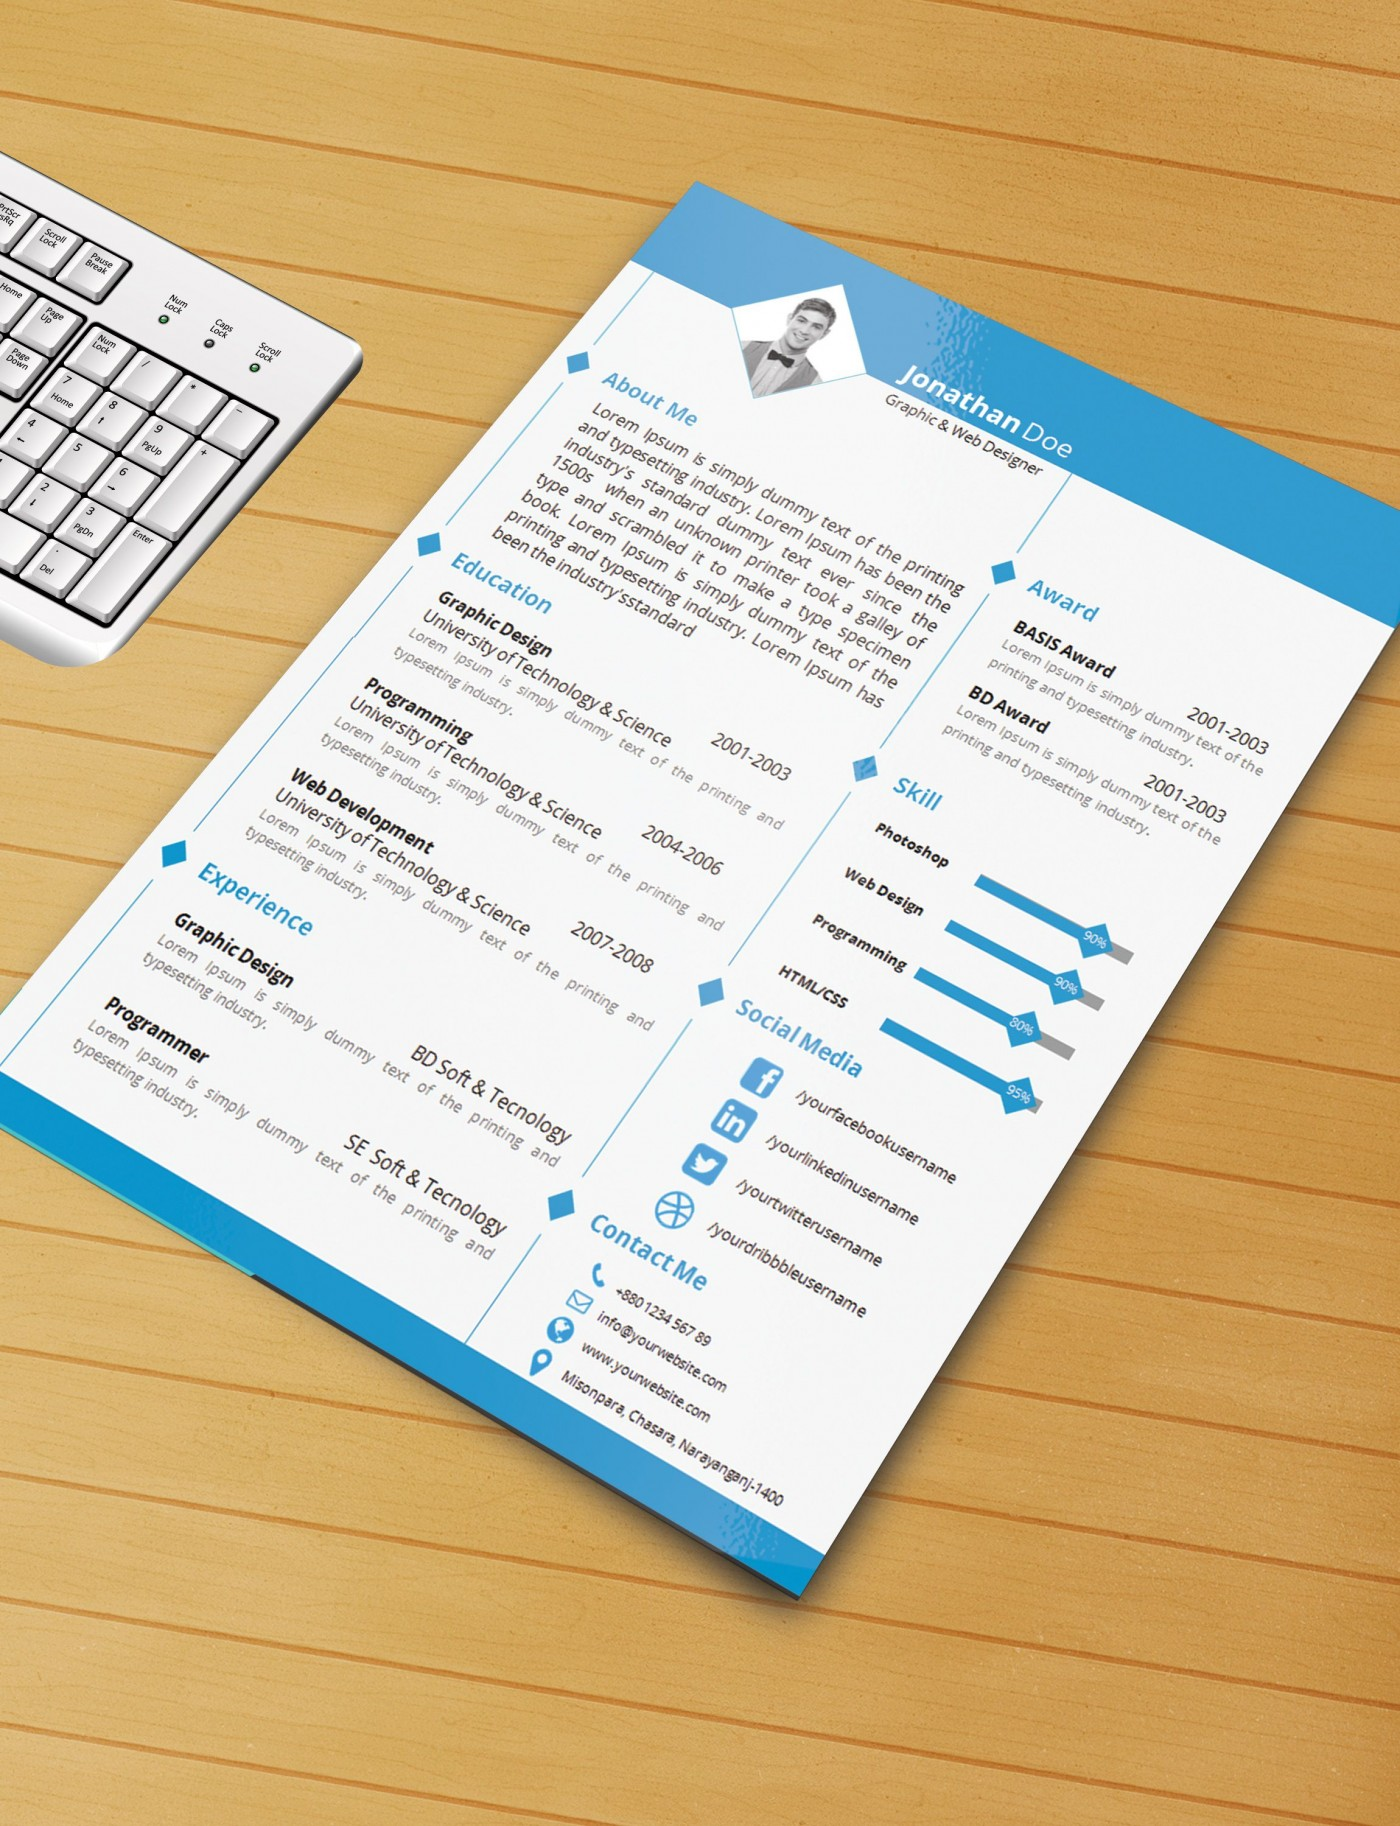 002 Frightening Microsoft Office Free Template Sample  Excel Download M Powerpoint1400